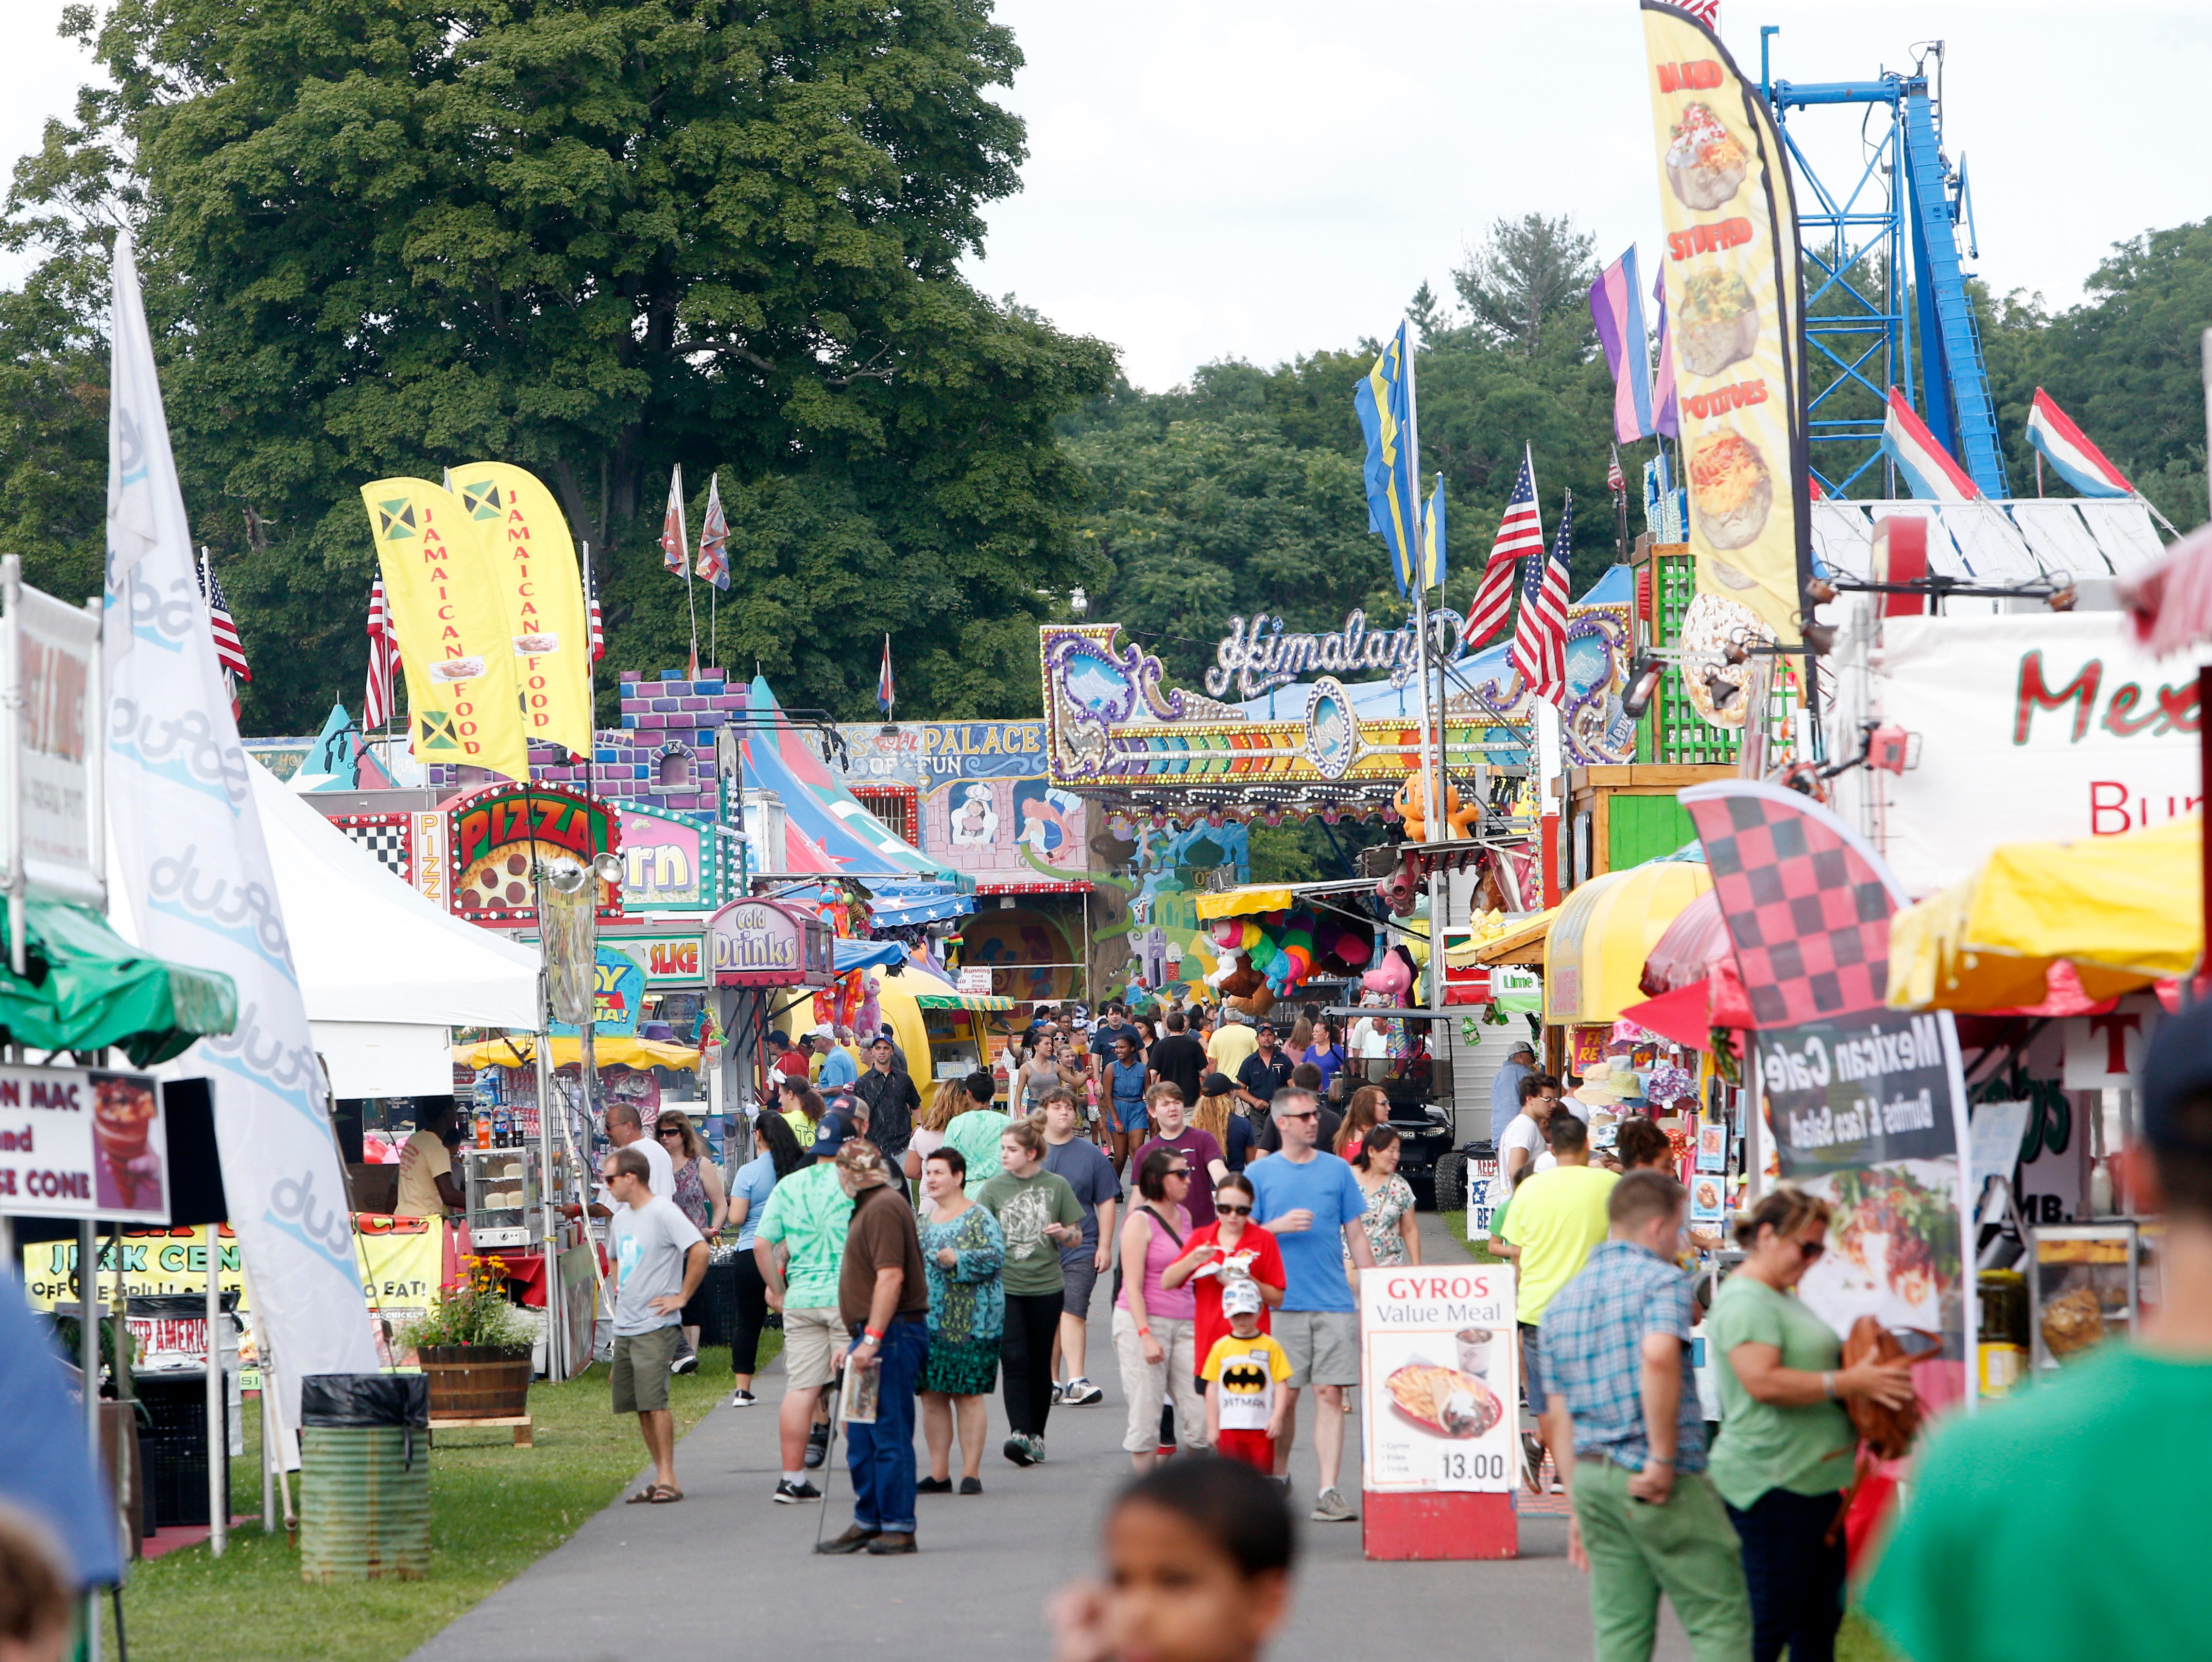 Opening day at the during the Ulster County Fair in New Paltz on July 31, 2018.